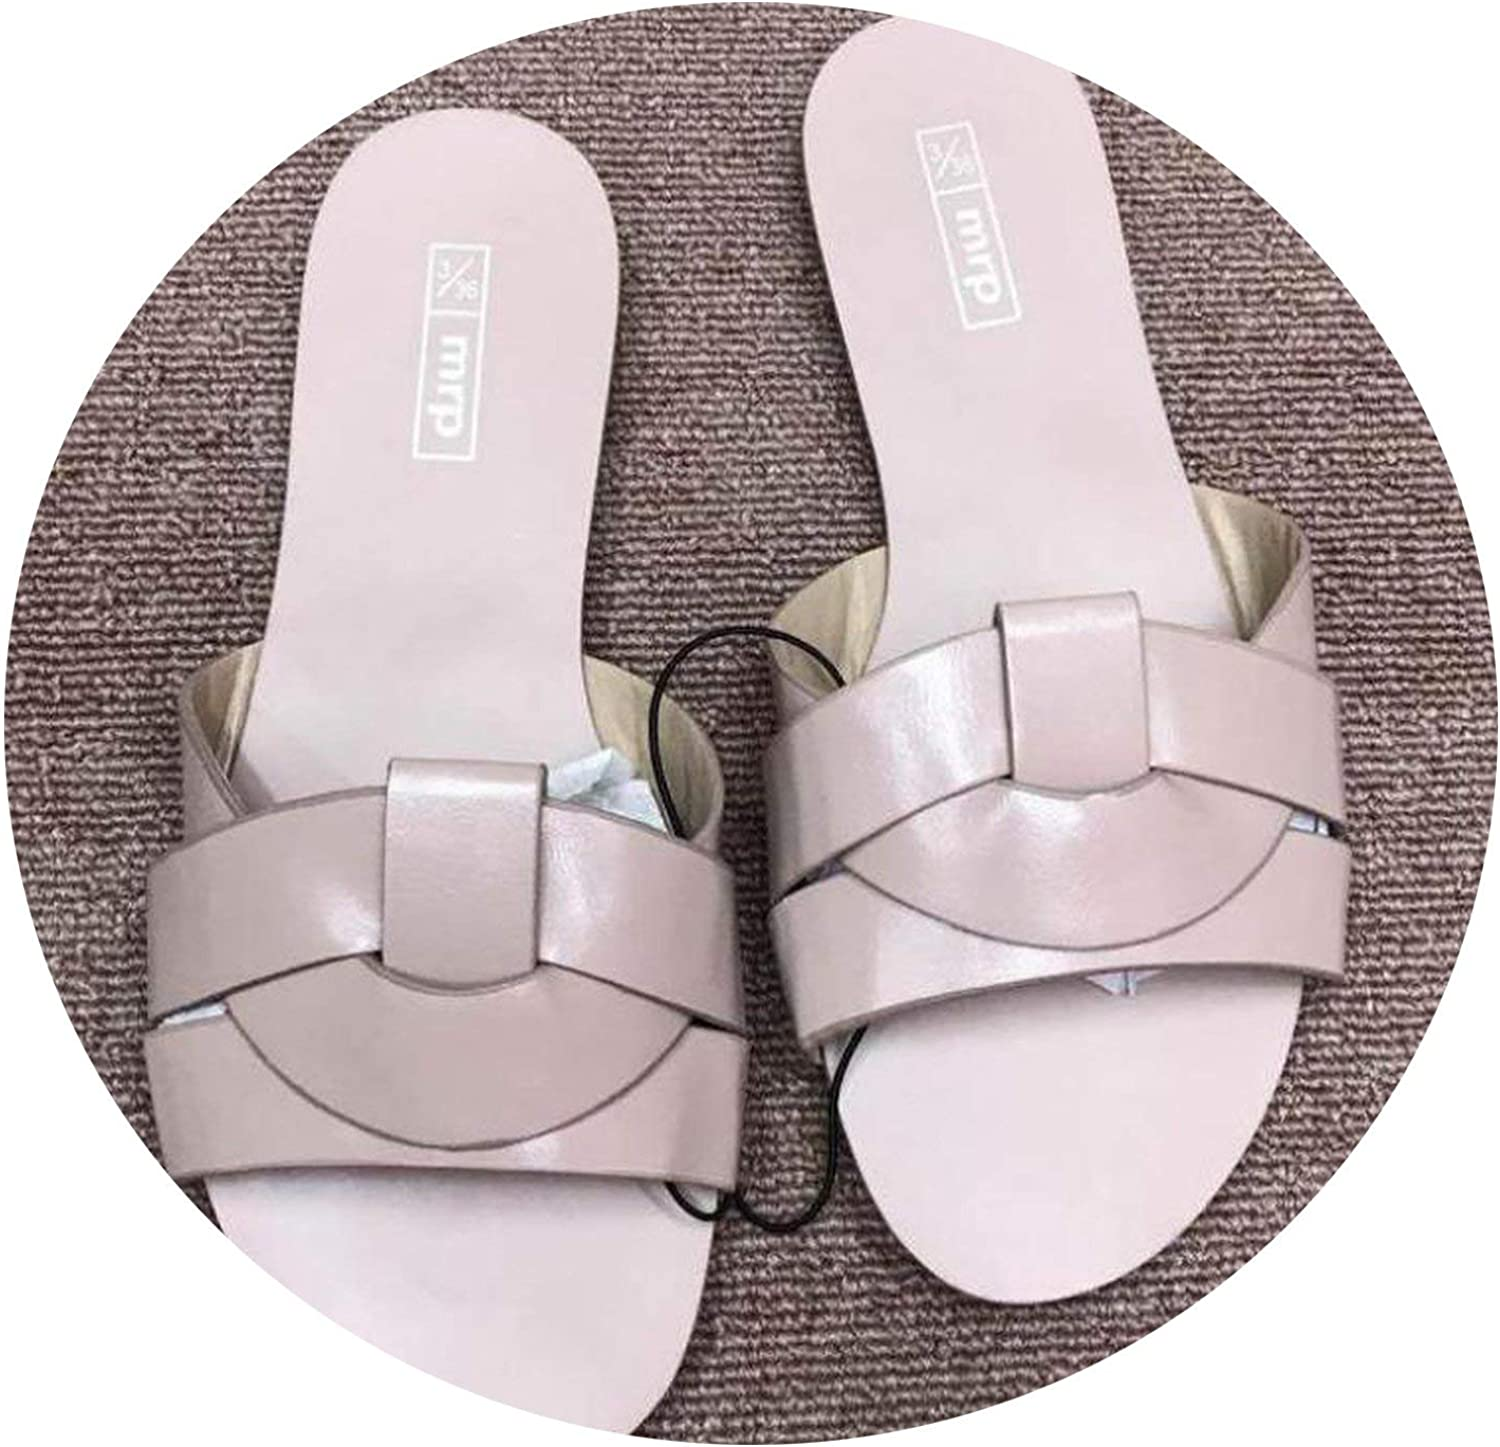 ALWAYS ME Sandal for Womens Beach Sandals Summer Slippers Platform Open Toe shoes Ladies Sandals Sandalia